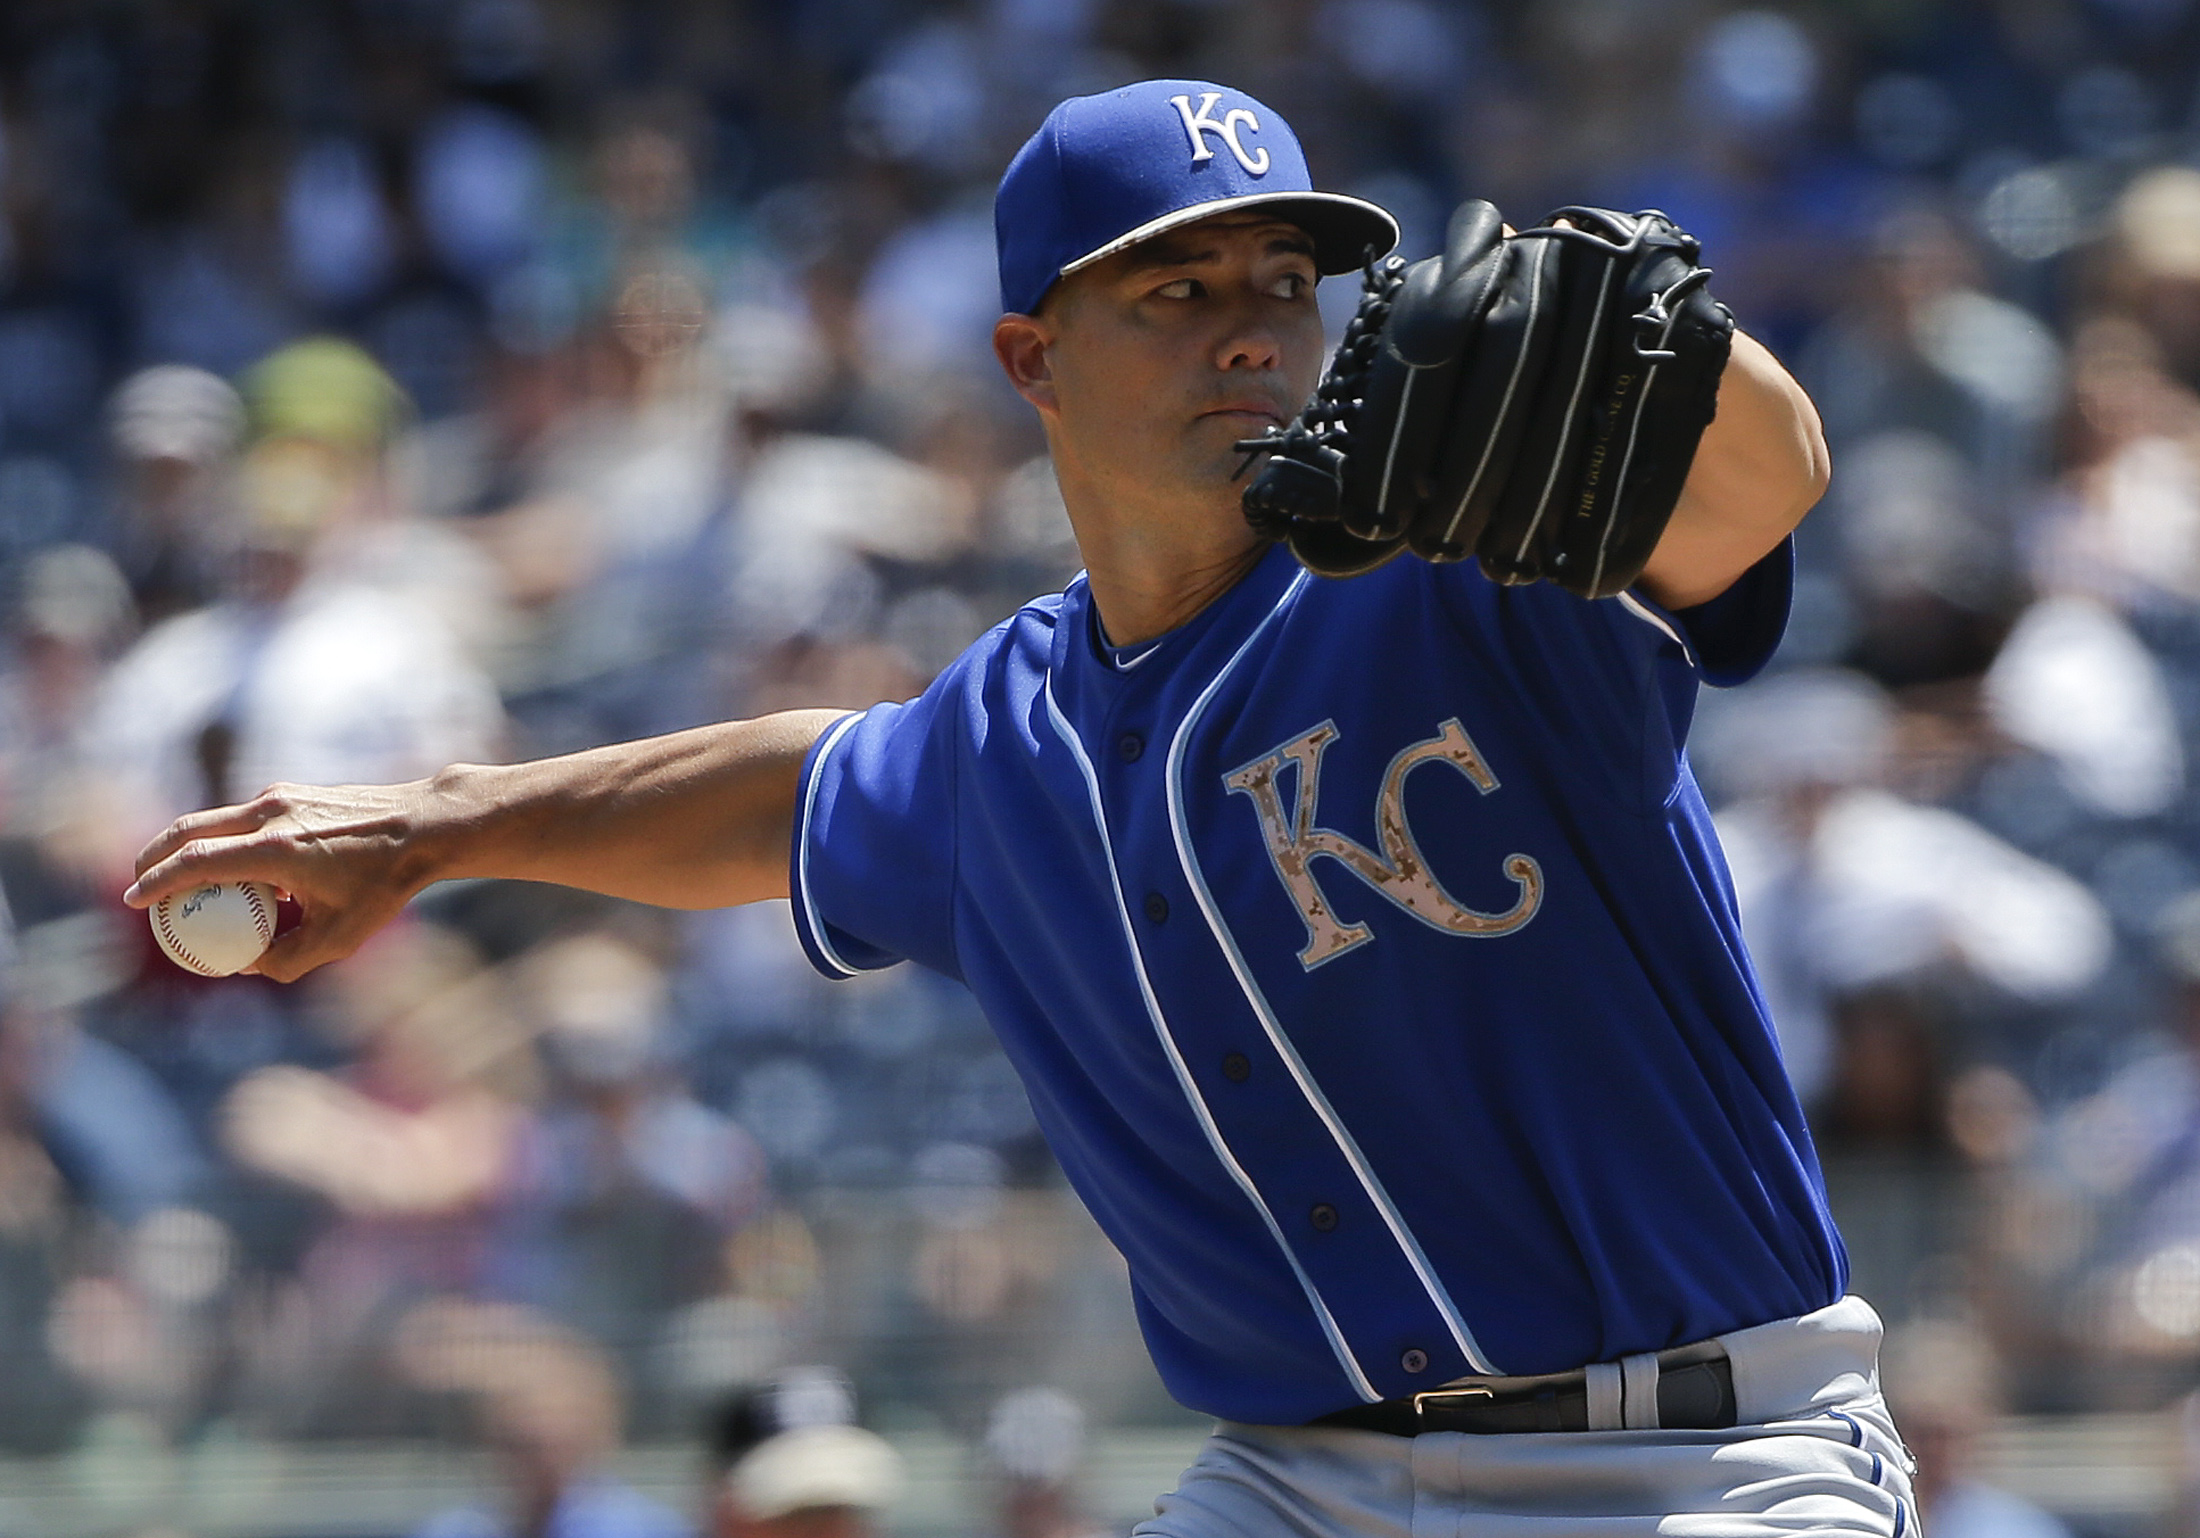 Kansas City Royals pitcher Jeremy Guthrie (11) delivers against the New York Yankees during the first inning of a baseball game, Monday, May 25, 2015, in New York.